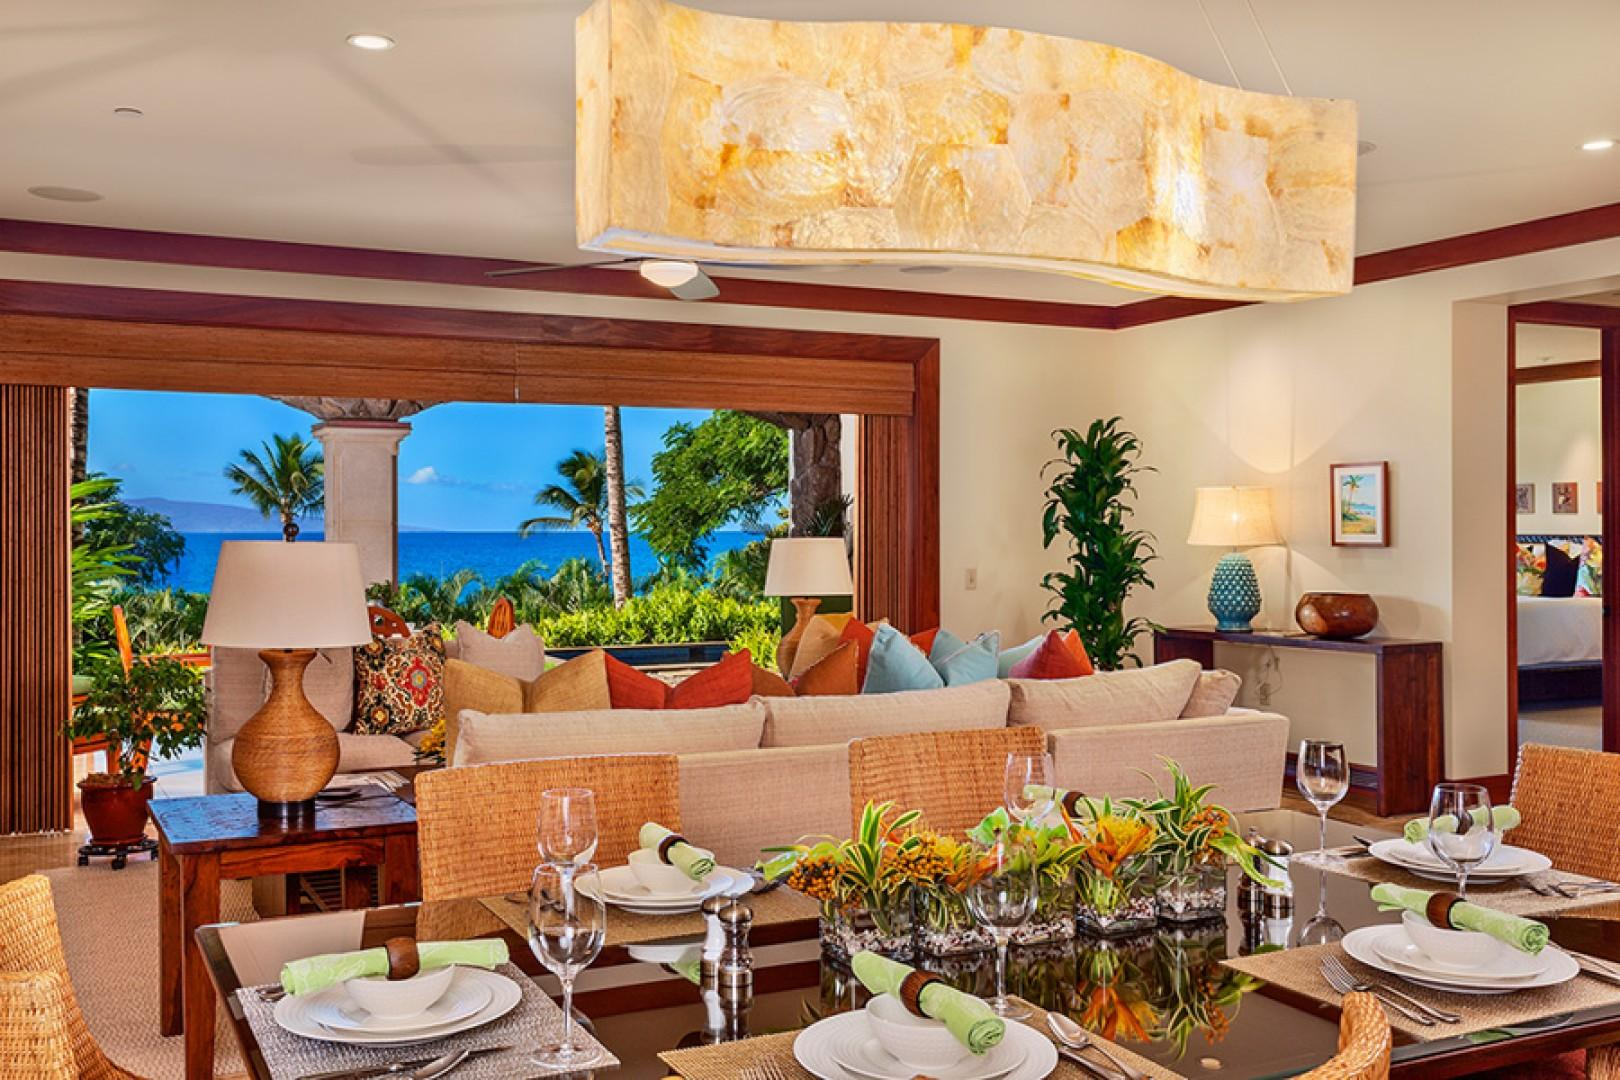 Coco Palms Pool Villa D101 - Indoor Dining for Six Guests and A Well-Equipped Kitchen